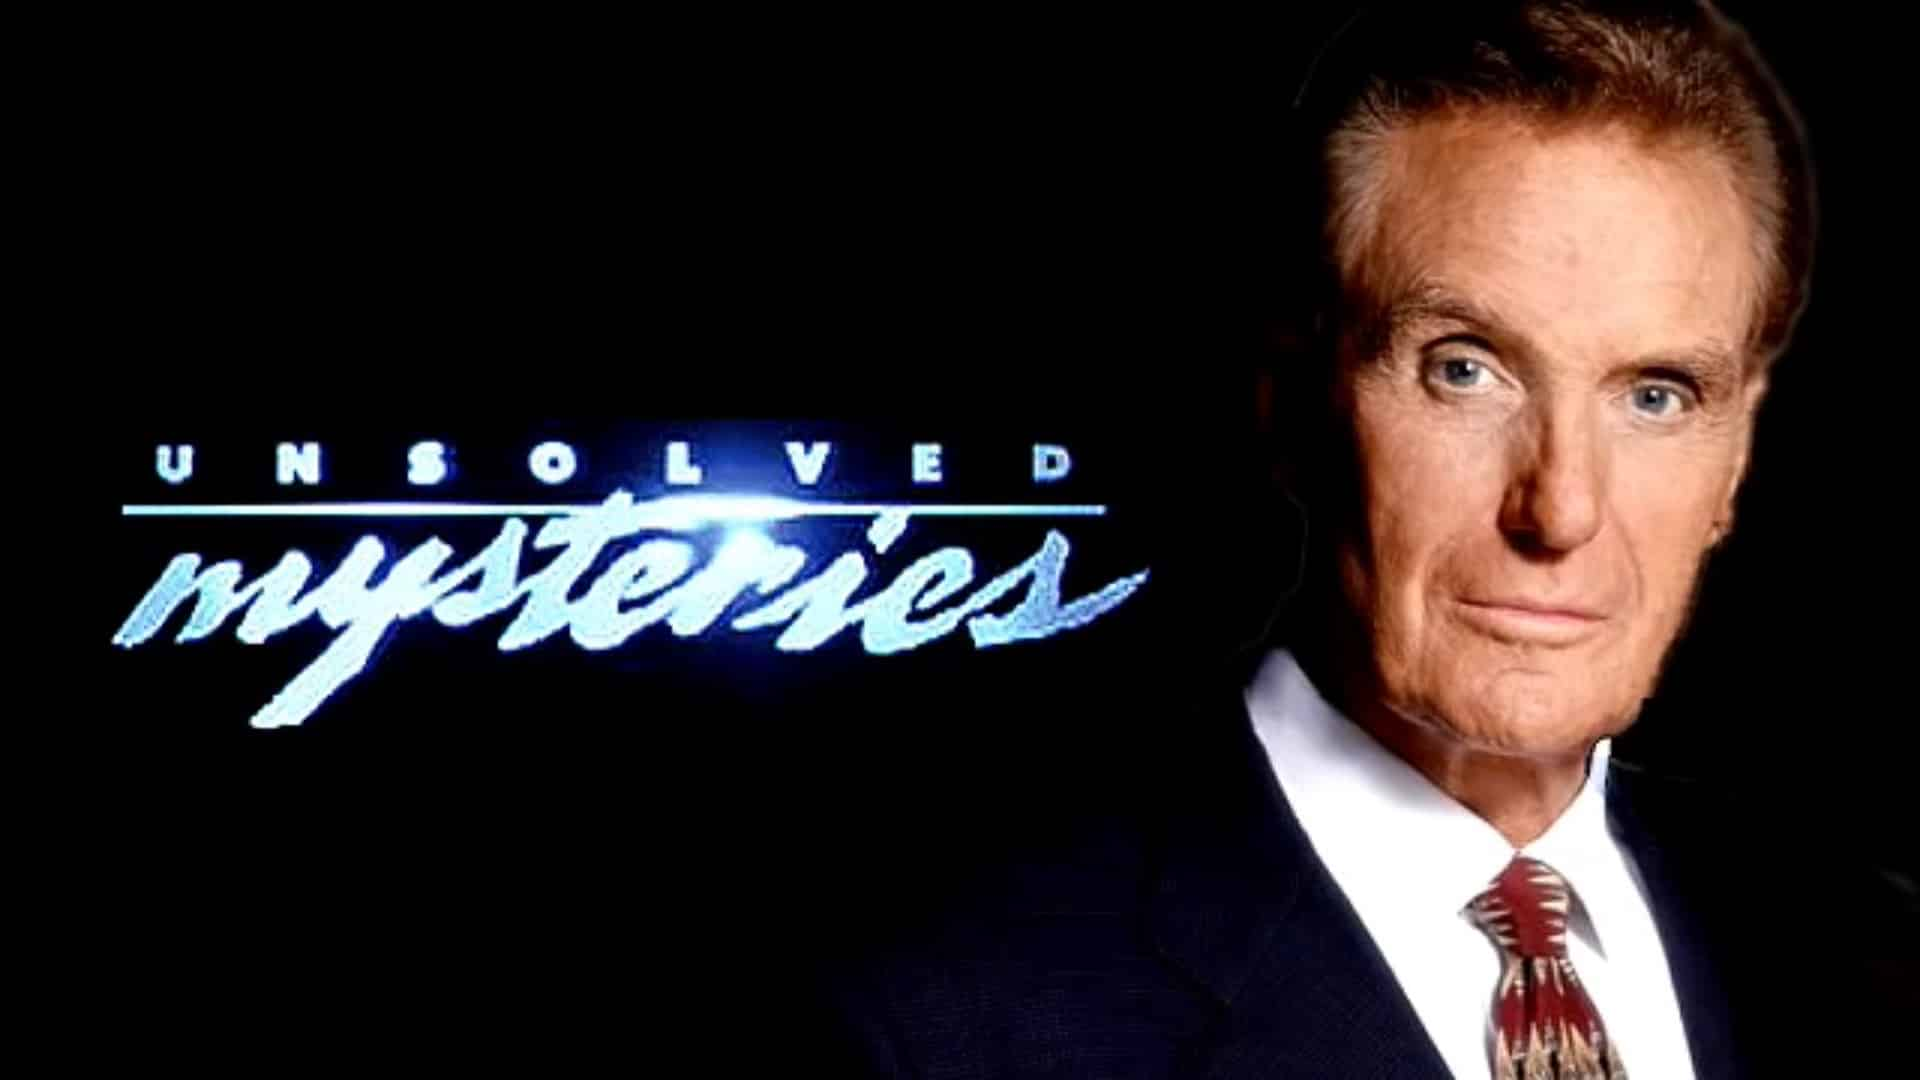 Unsolved Mysteries Netflix